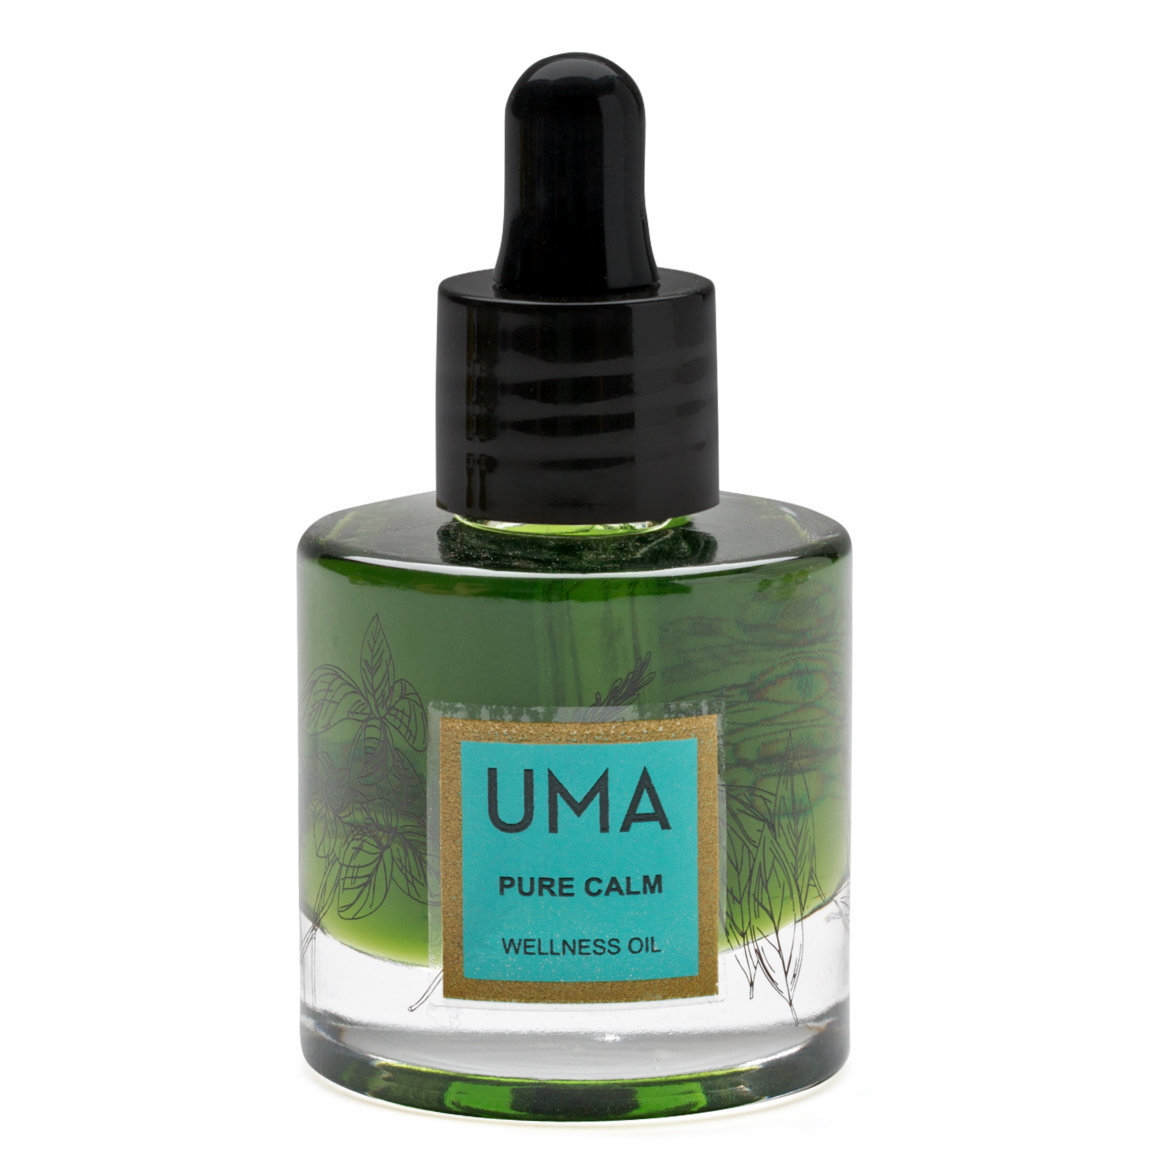 Uma   Pure Calm Wellness Oil